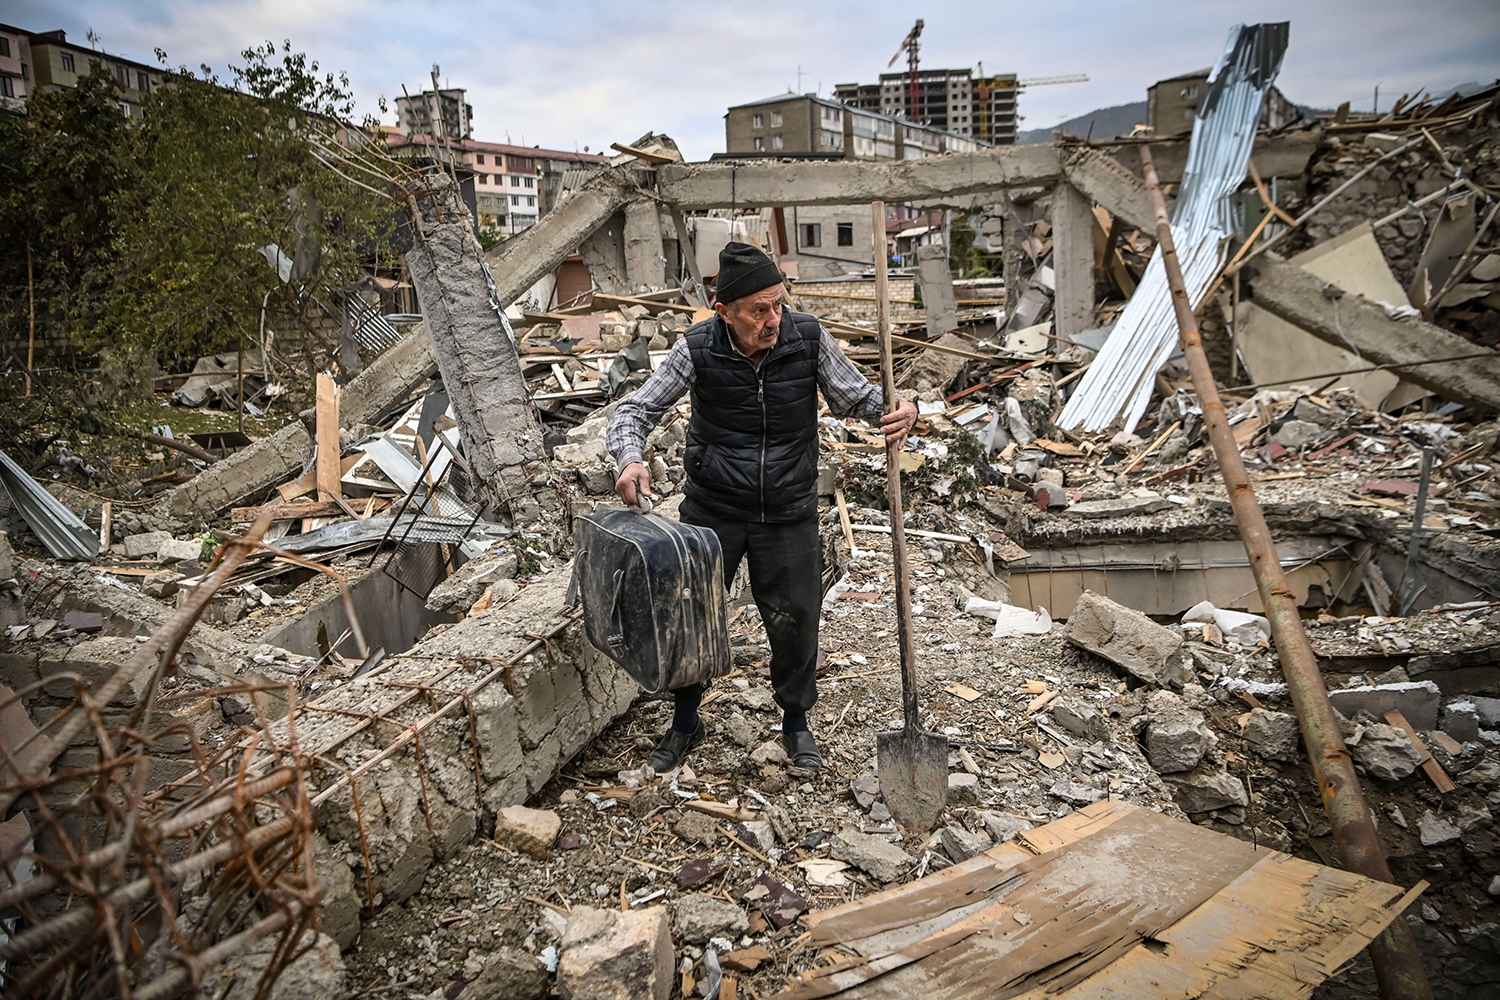 Retired police officer Genadiy Avanesyan, 73, searches for his belongings in the remains of his house, which was destroyed by Azeri shelling, in the city of Stepanakert, Artsakh, on Oct. 10. Amenia and Azerbaijan traded accusations of new attacks that day in breach of a ceasefire deal to halt weeks of fierce fighting over the disputed Nagorno-Karabakh region. ARIS MESSINIS/AFP via Getty Images